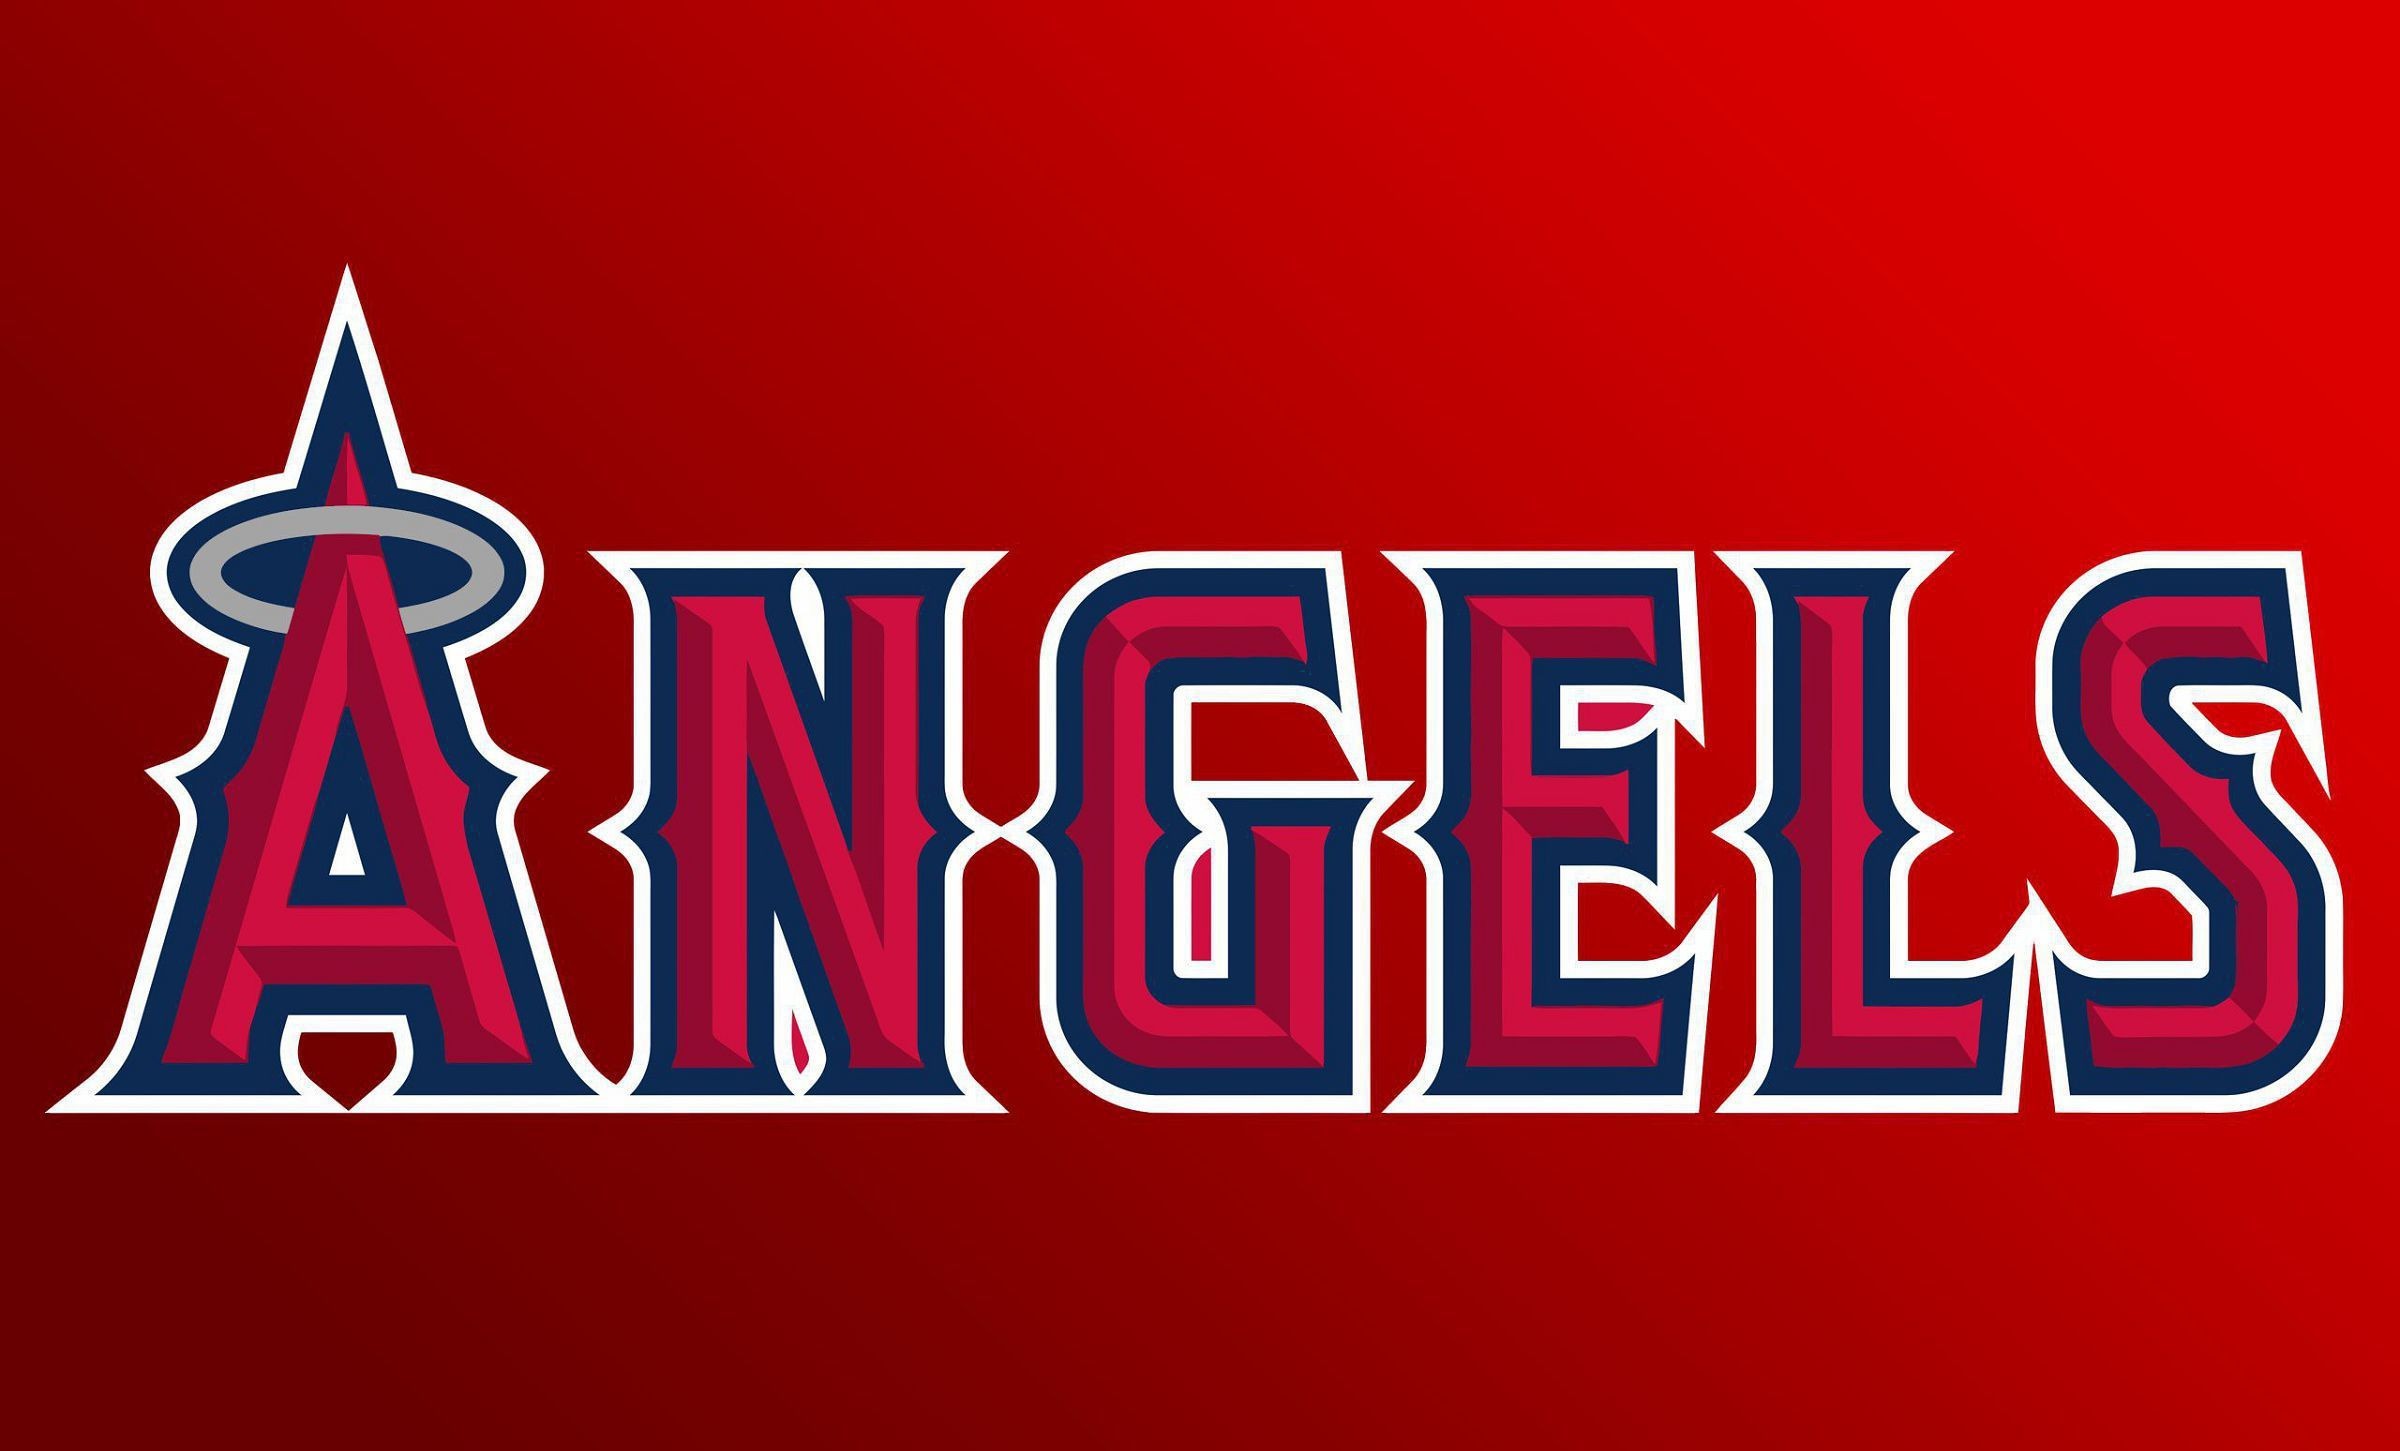 Anaheim Angels Images